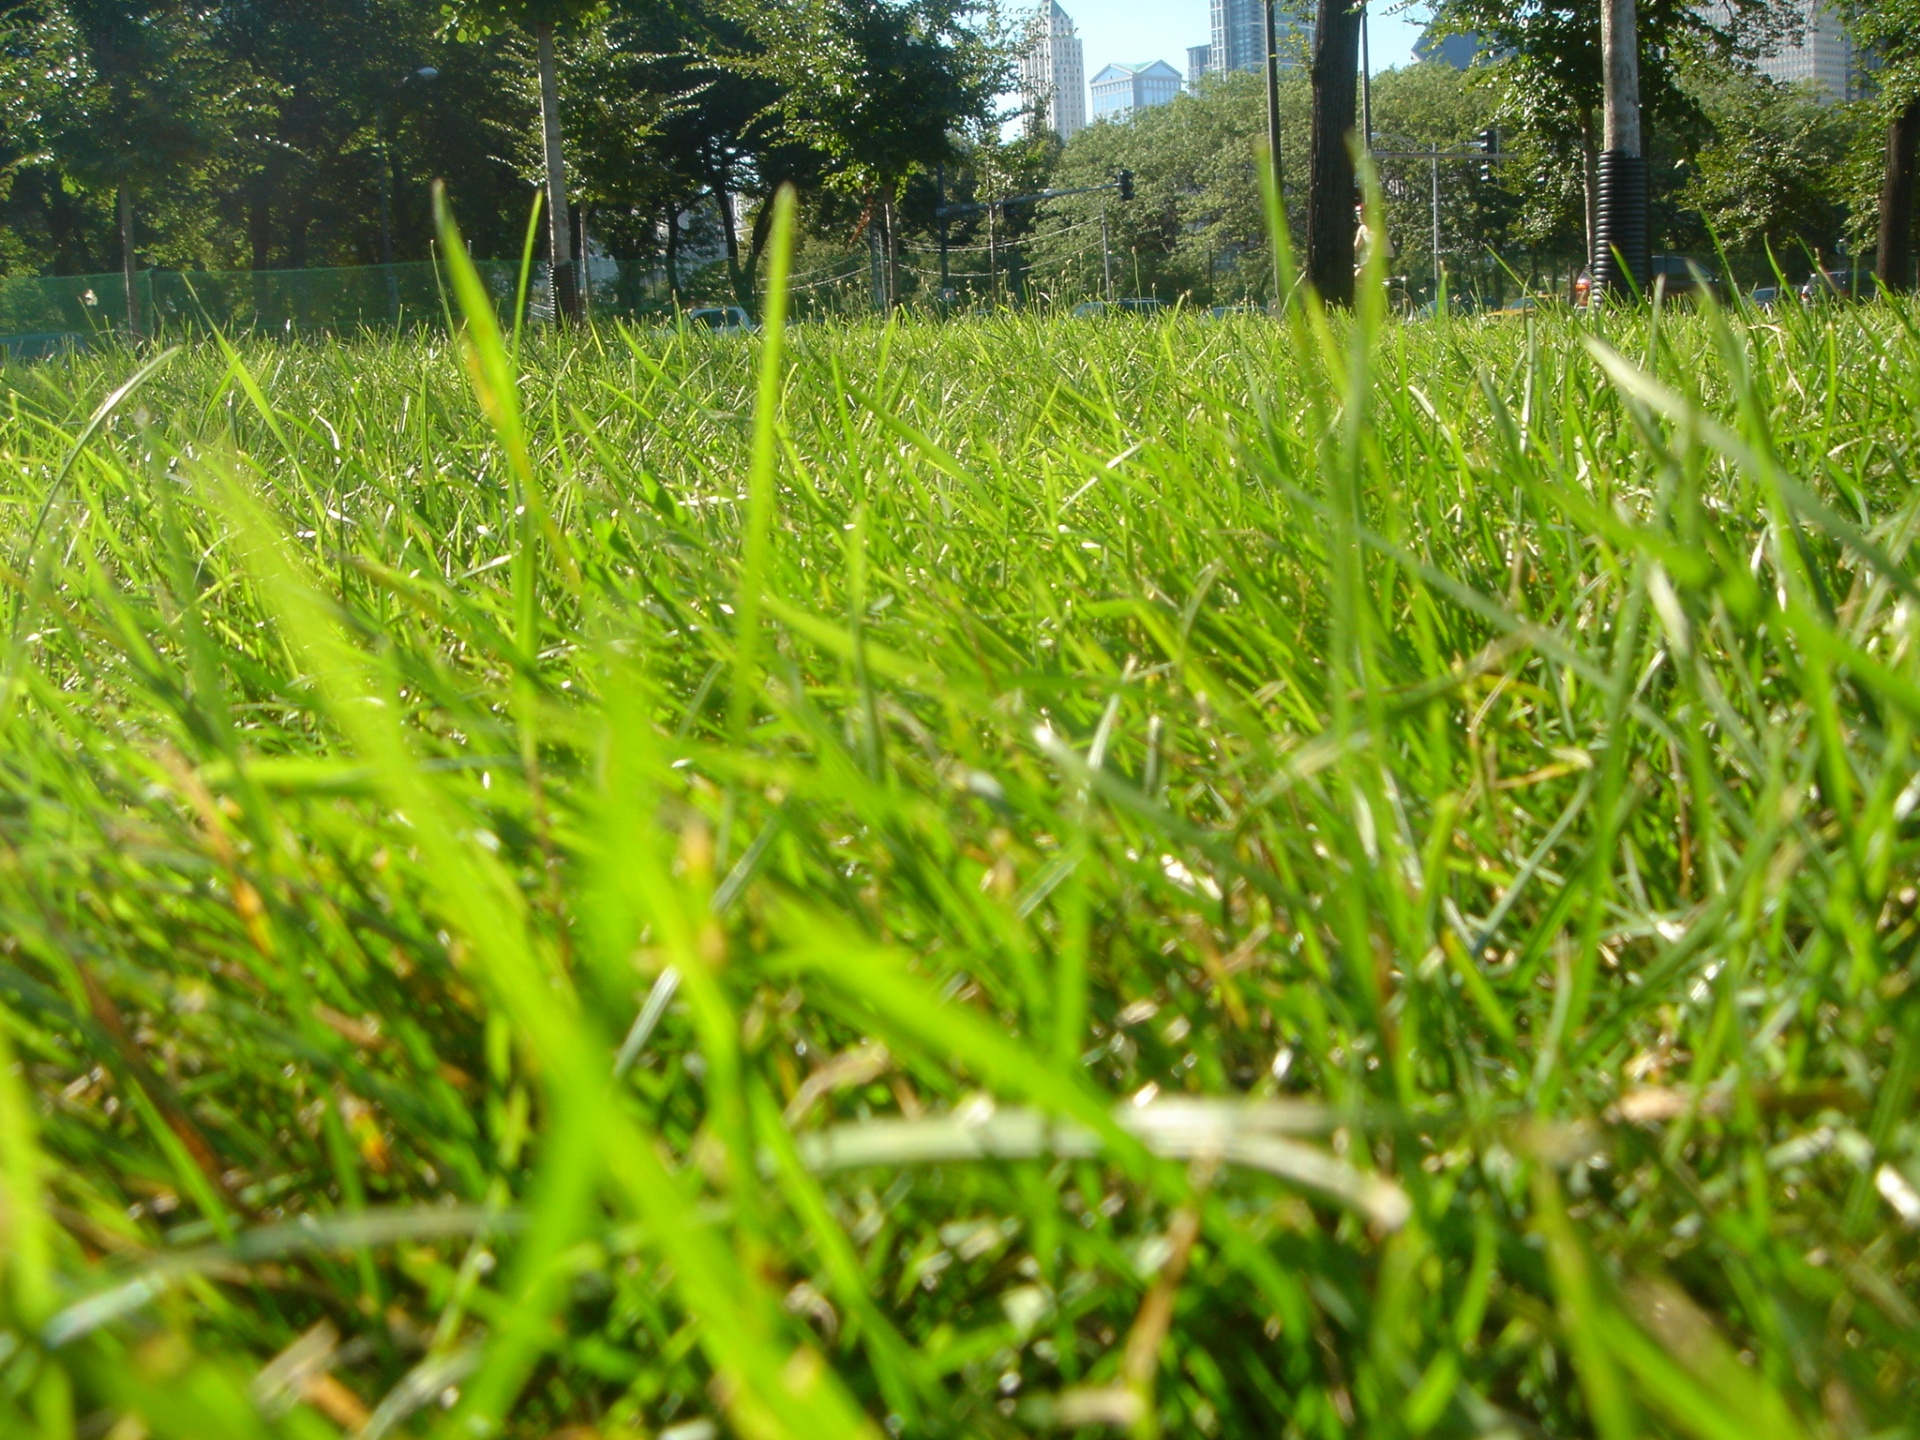 Grass In Park Wallpapers Grass In Park Stock Photos